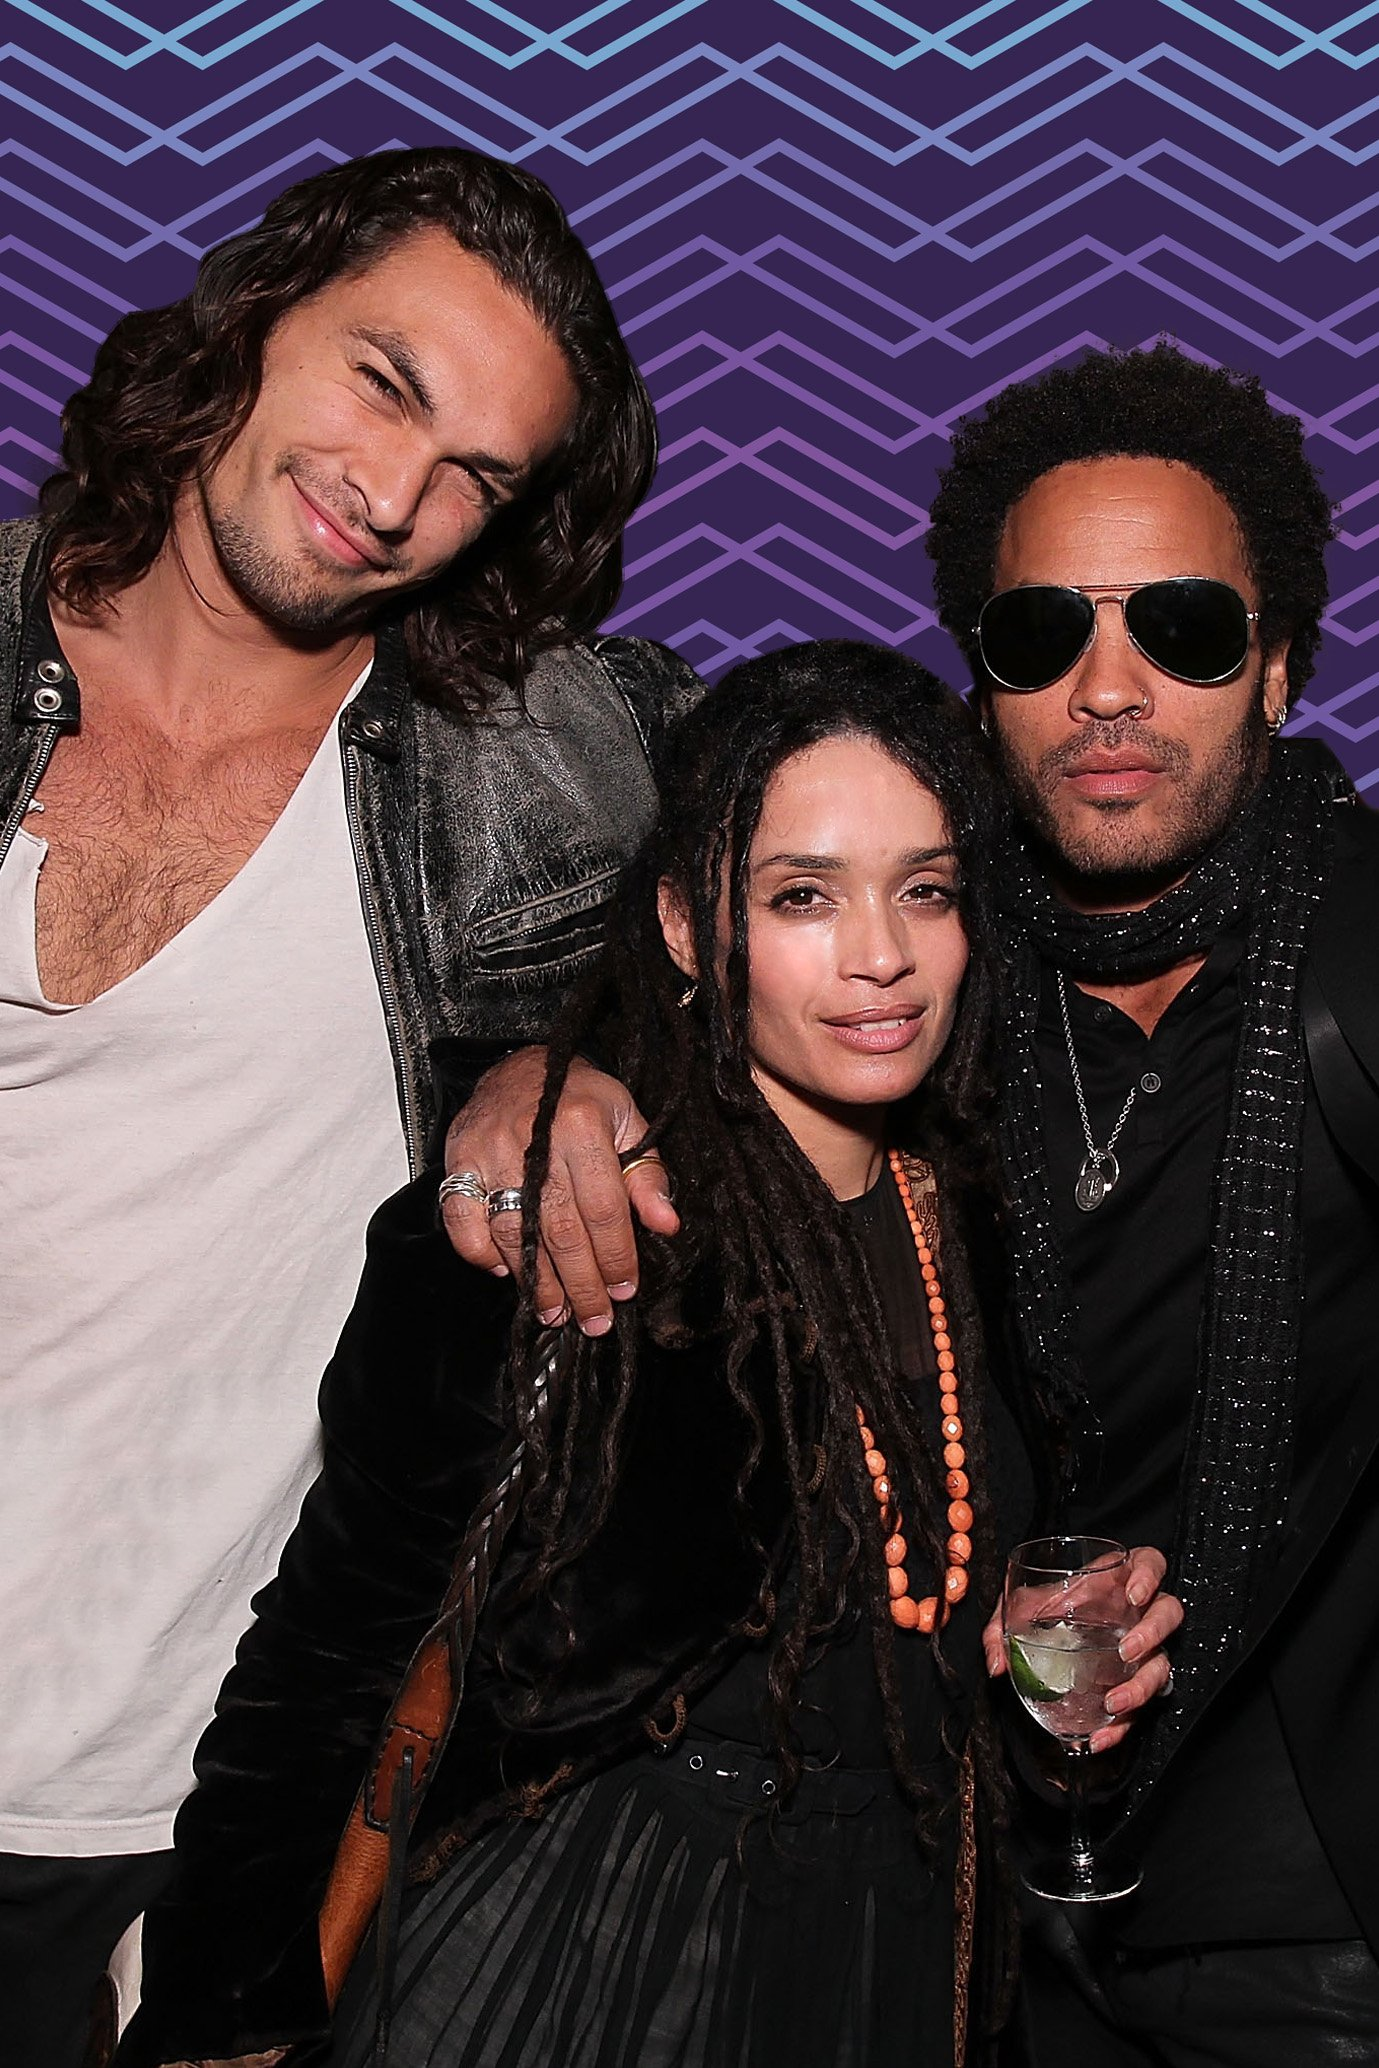 Lisa, Jason and Lenny Kravitz posing for a picture together